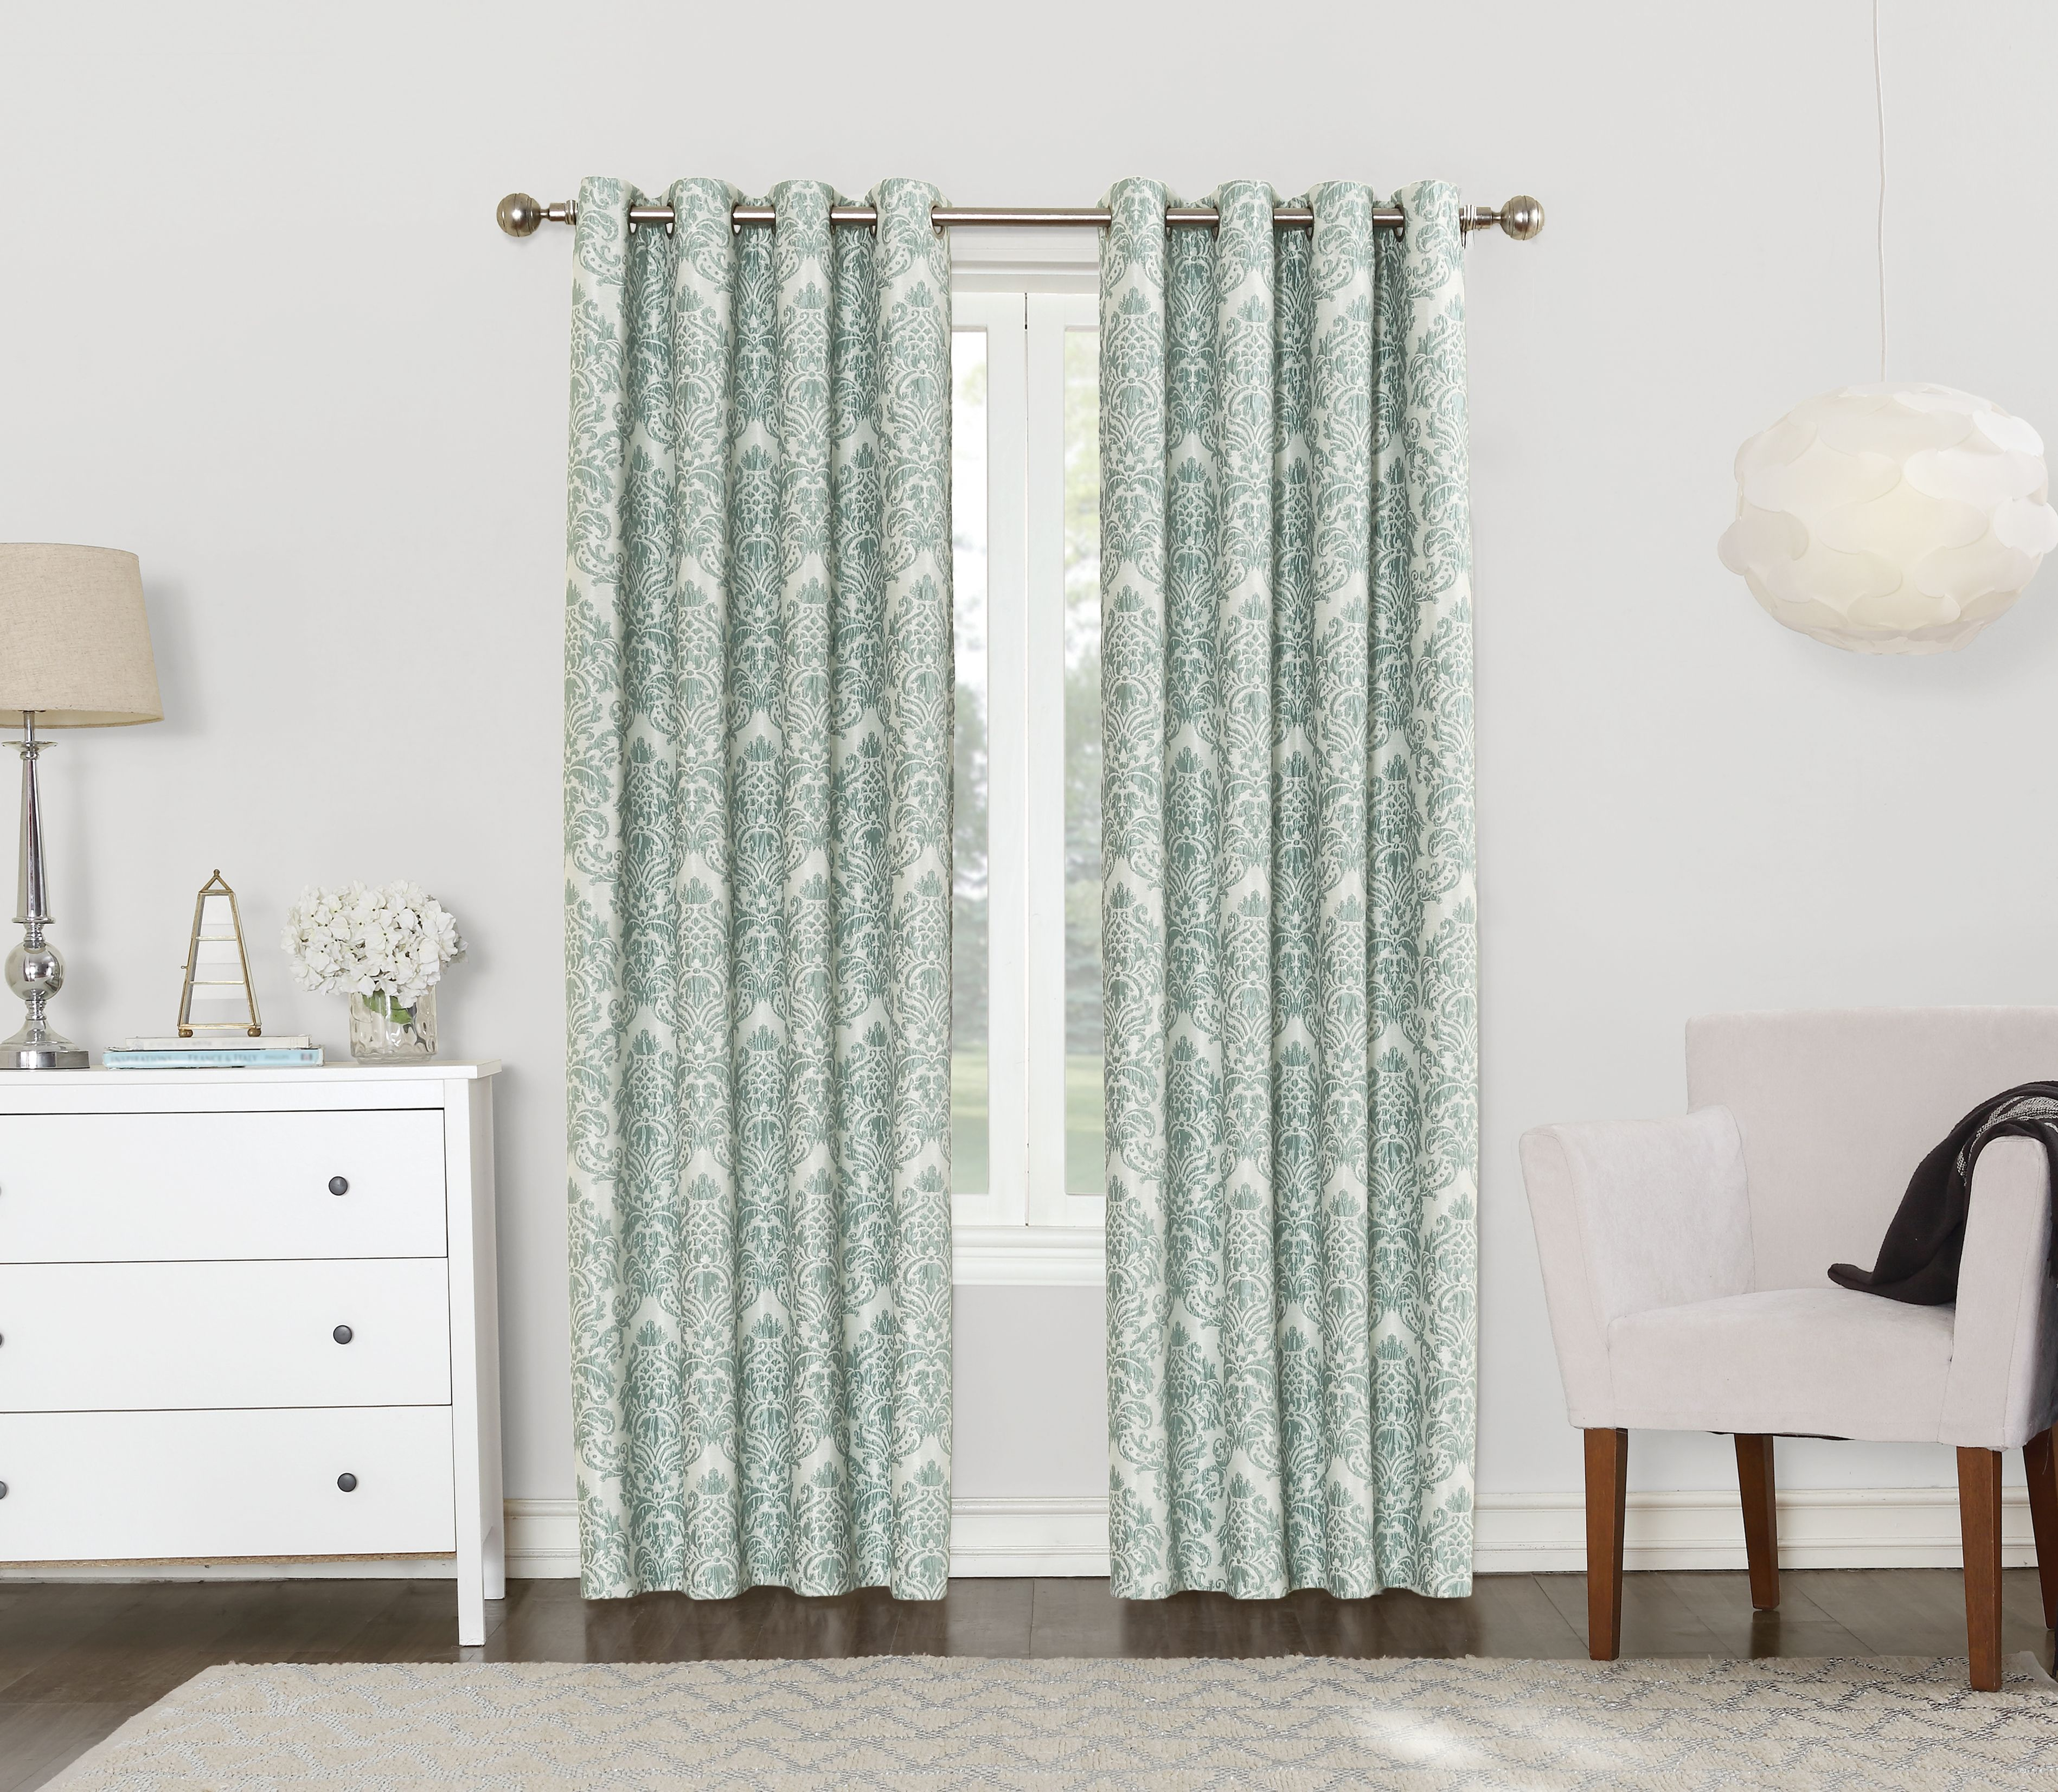 Home With Images Panel Curtains Grommet Curtains Curtains